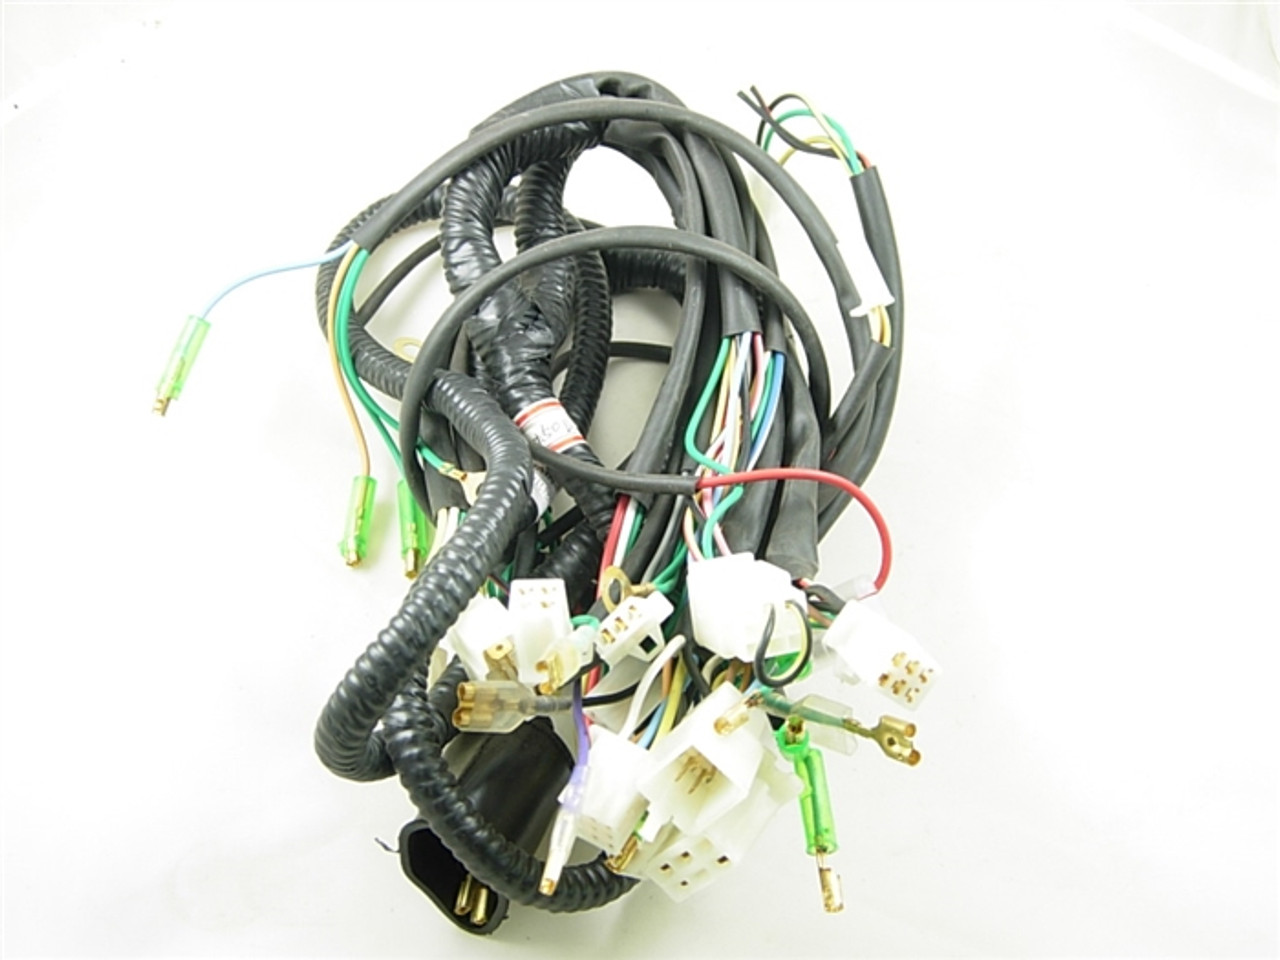 MAIN WIRE HARNESS (PEACE) 11280-A72-2